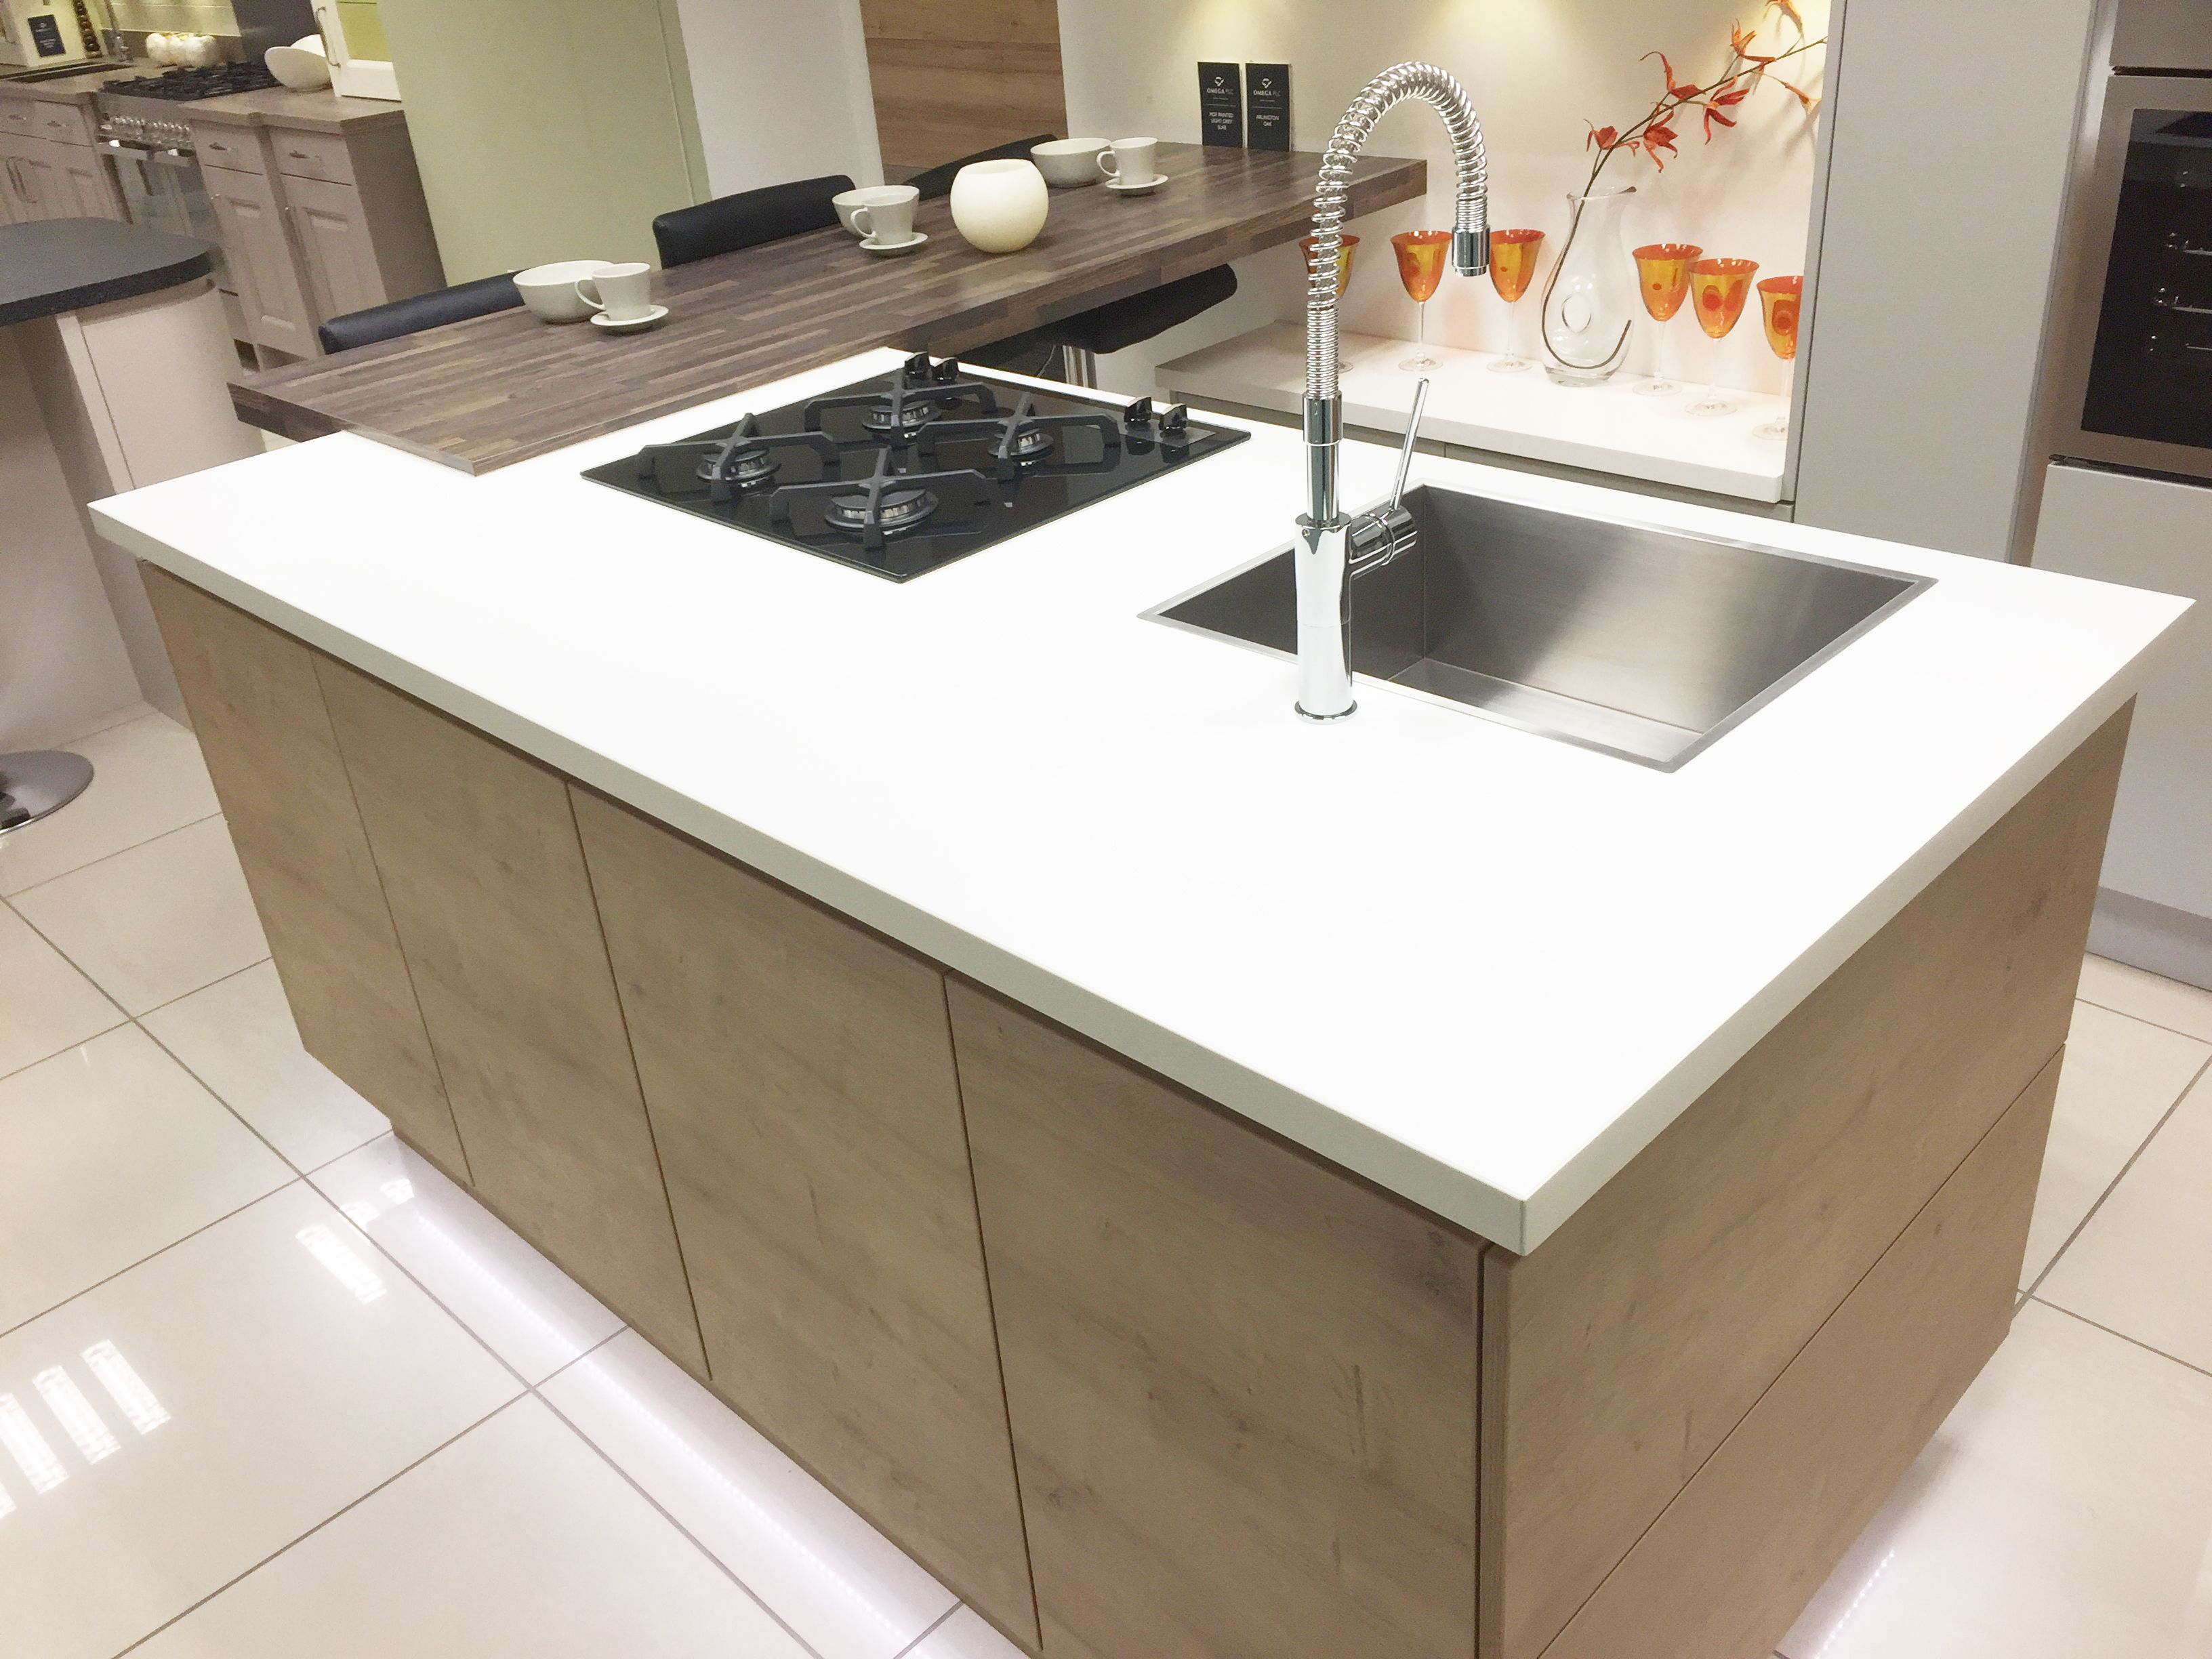 Modern kitchen island with hob sink and breakfast bar area